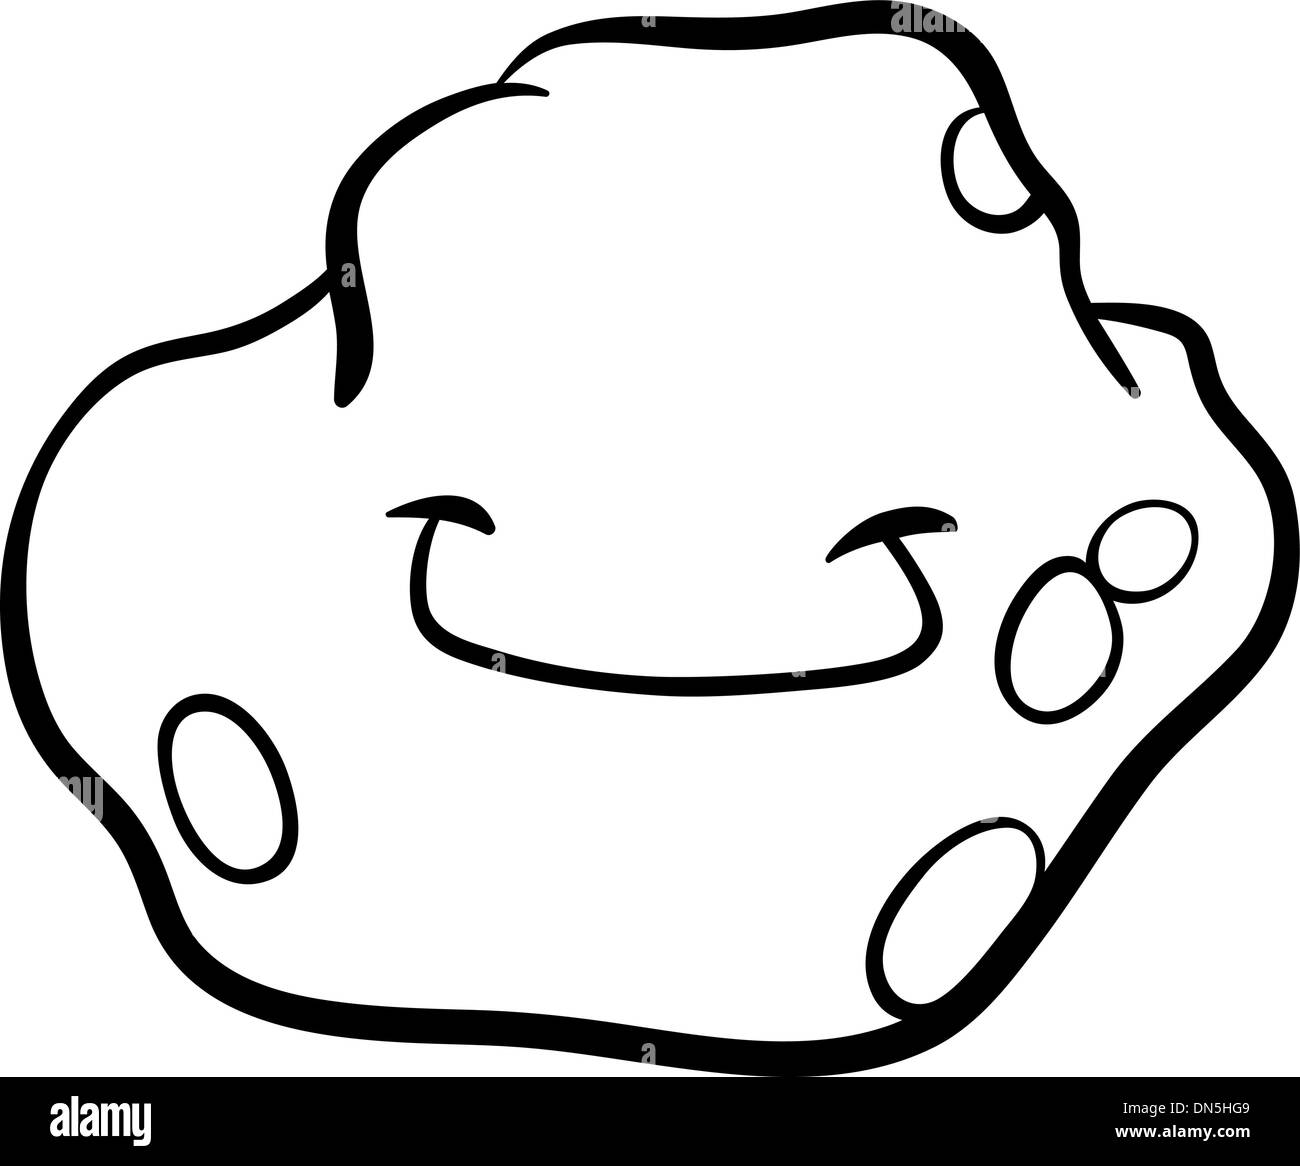 Cartoon Asteroid Coloring Page